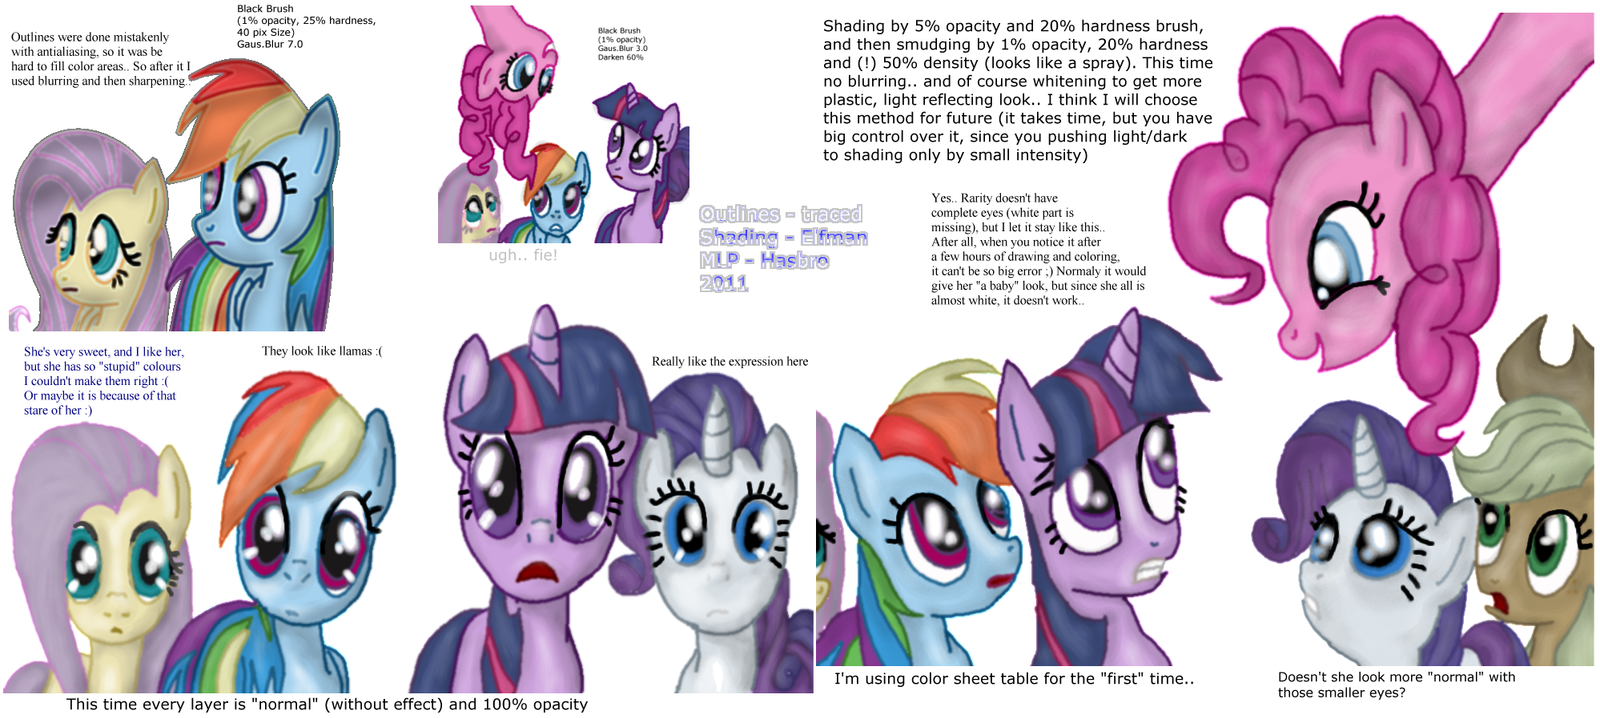 Mlp G6 Images - Reverse Search